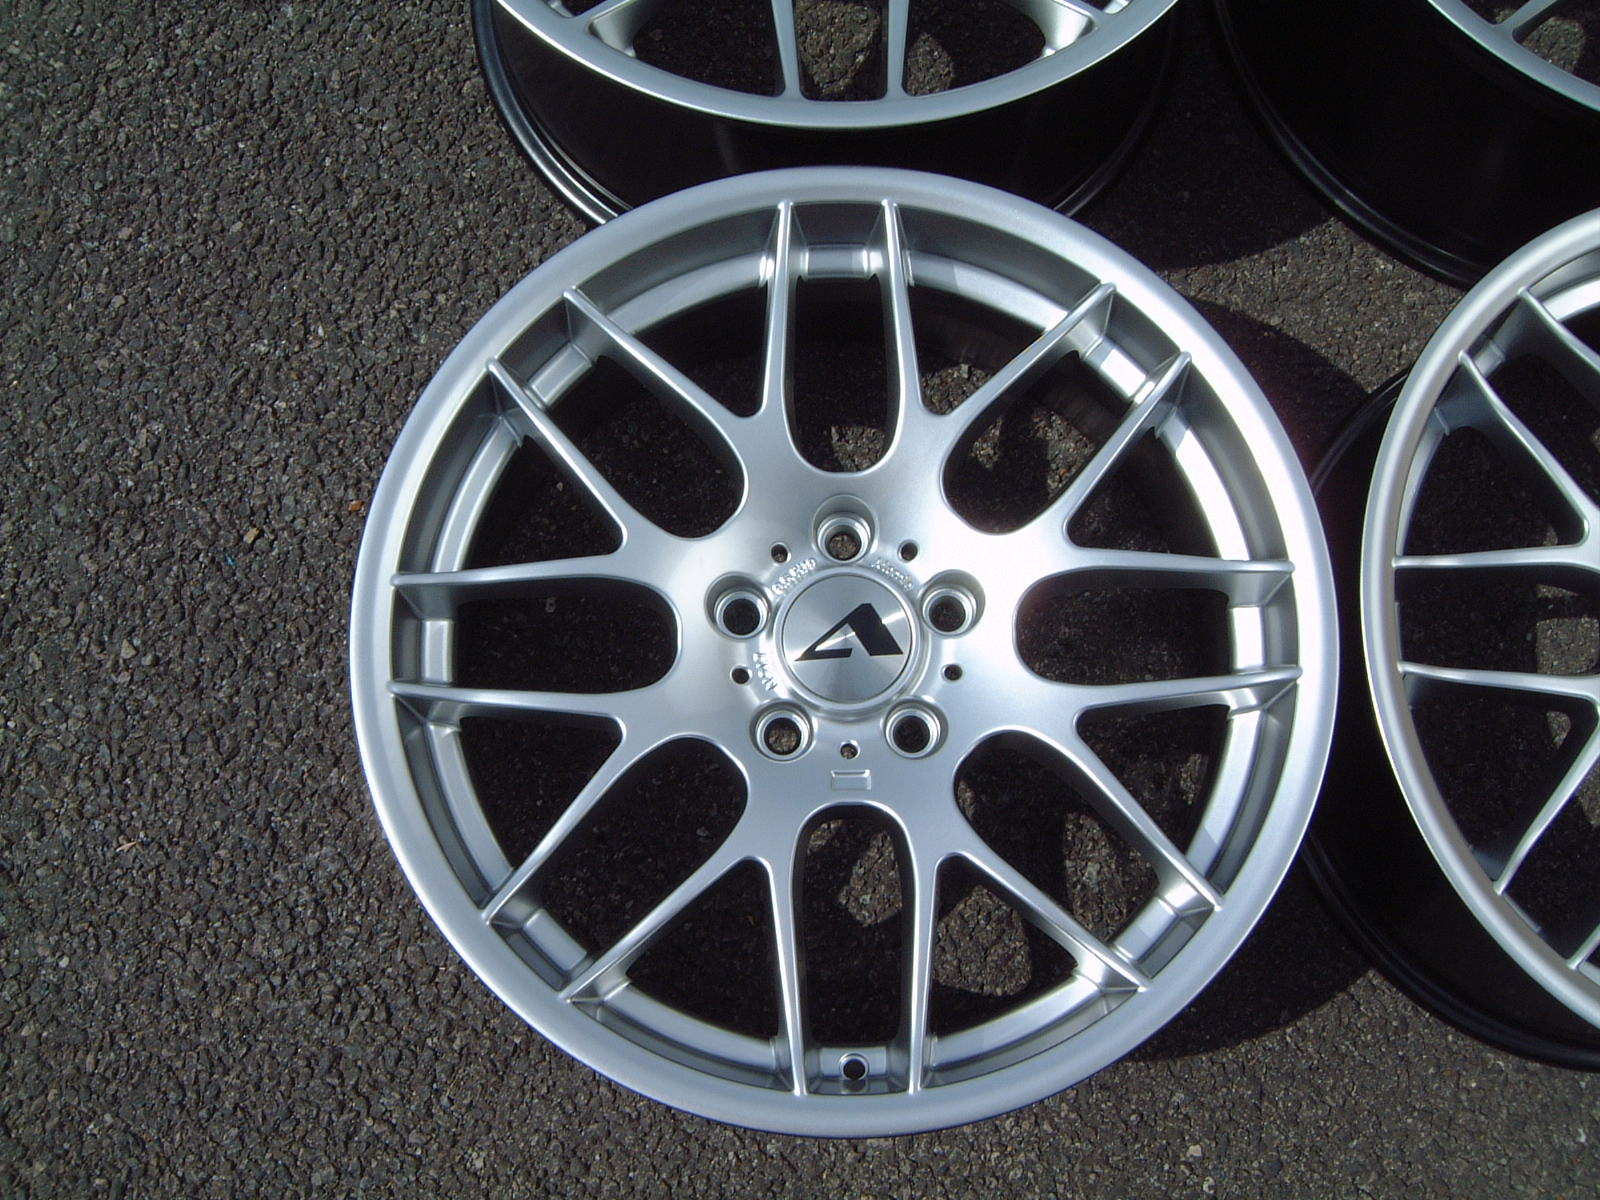 "NEW 19"" ATOMIC CSL ALLOY WHEELS IN HYPER SILVER, WITH VERY DEEP CONCAVE 9.5"" ET27 REAR"